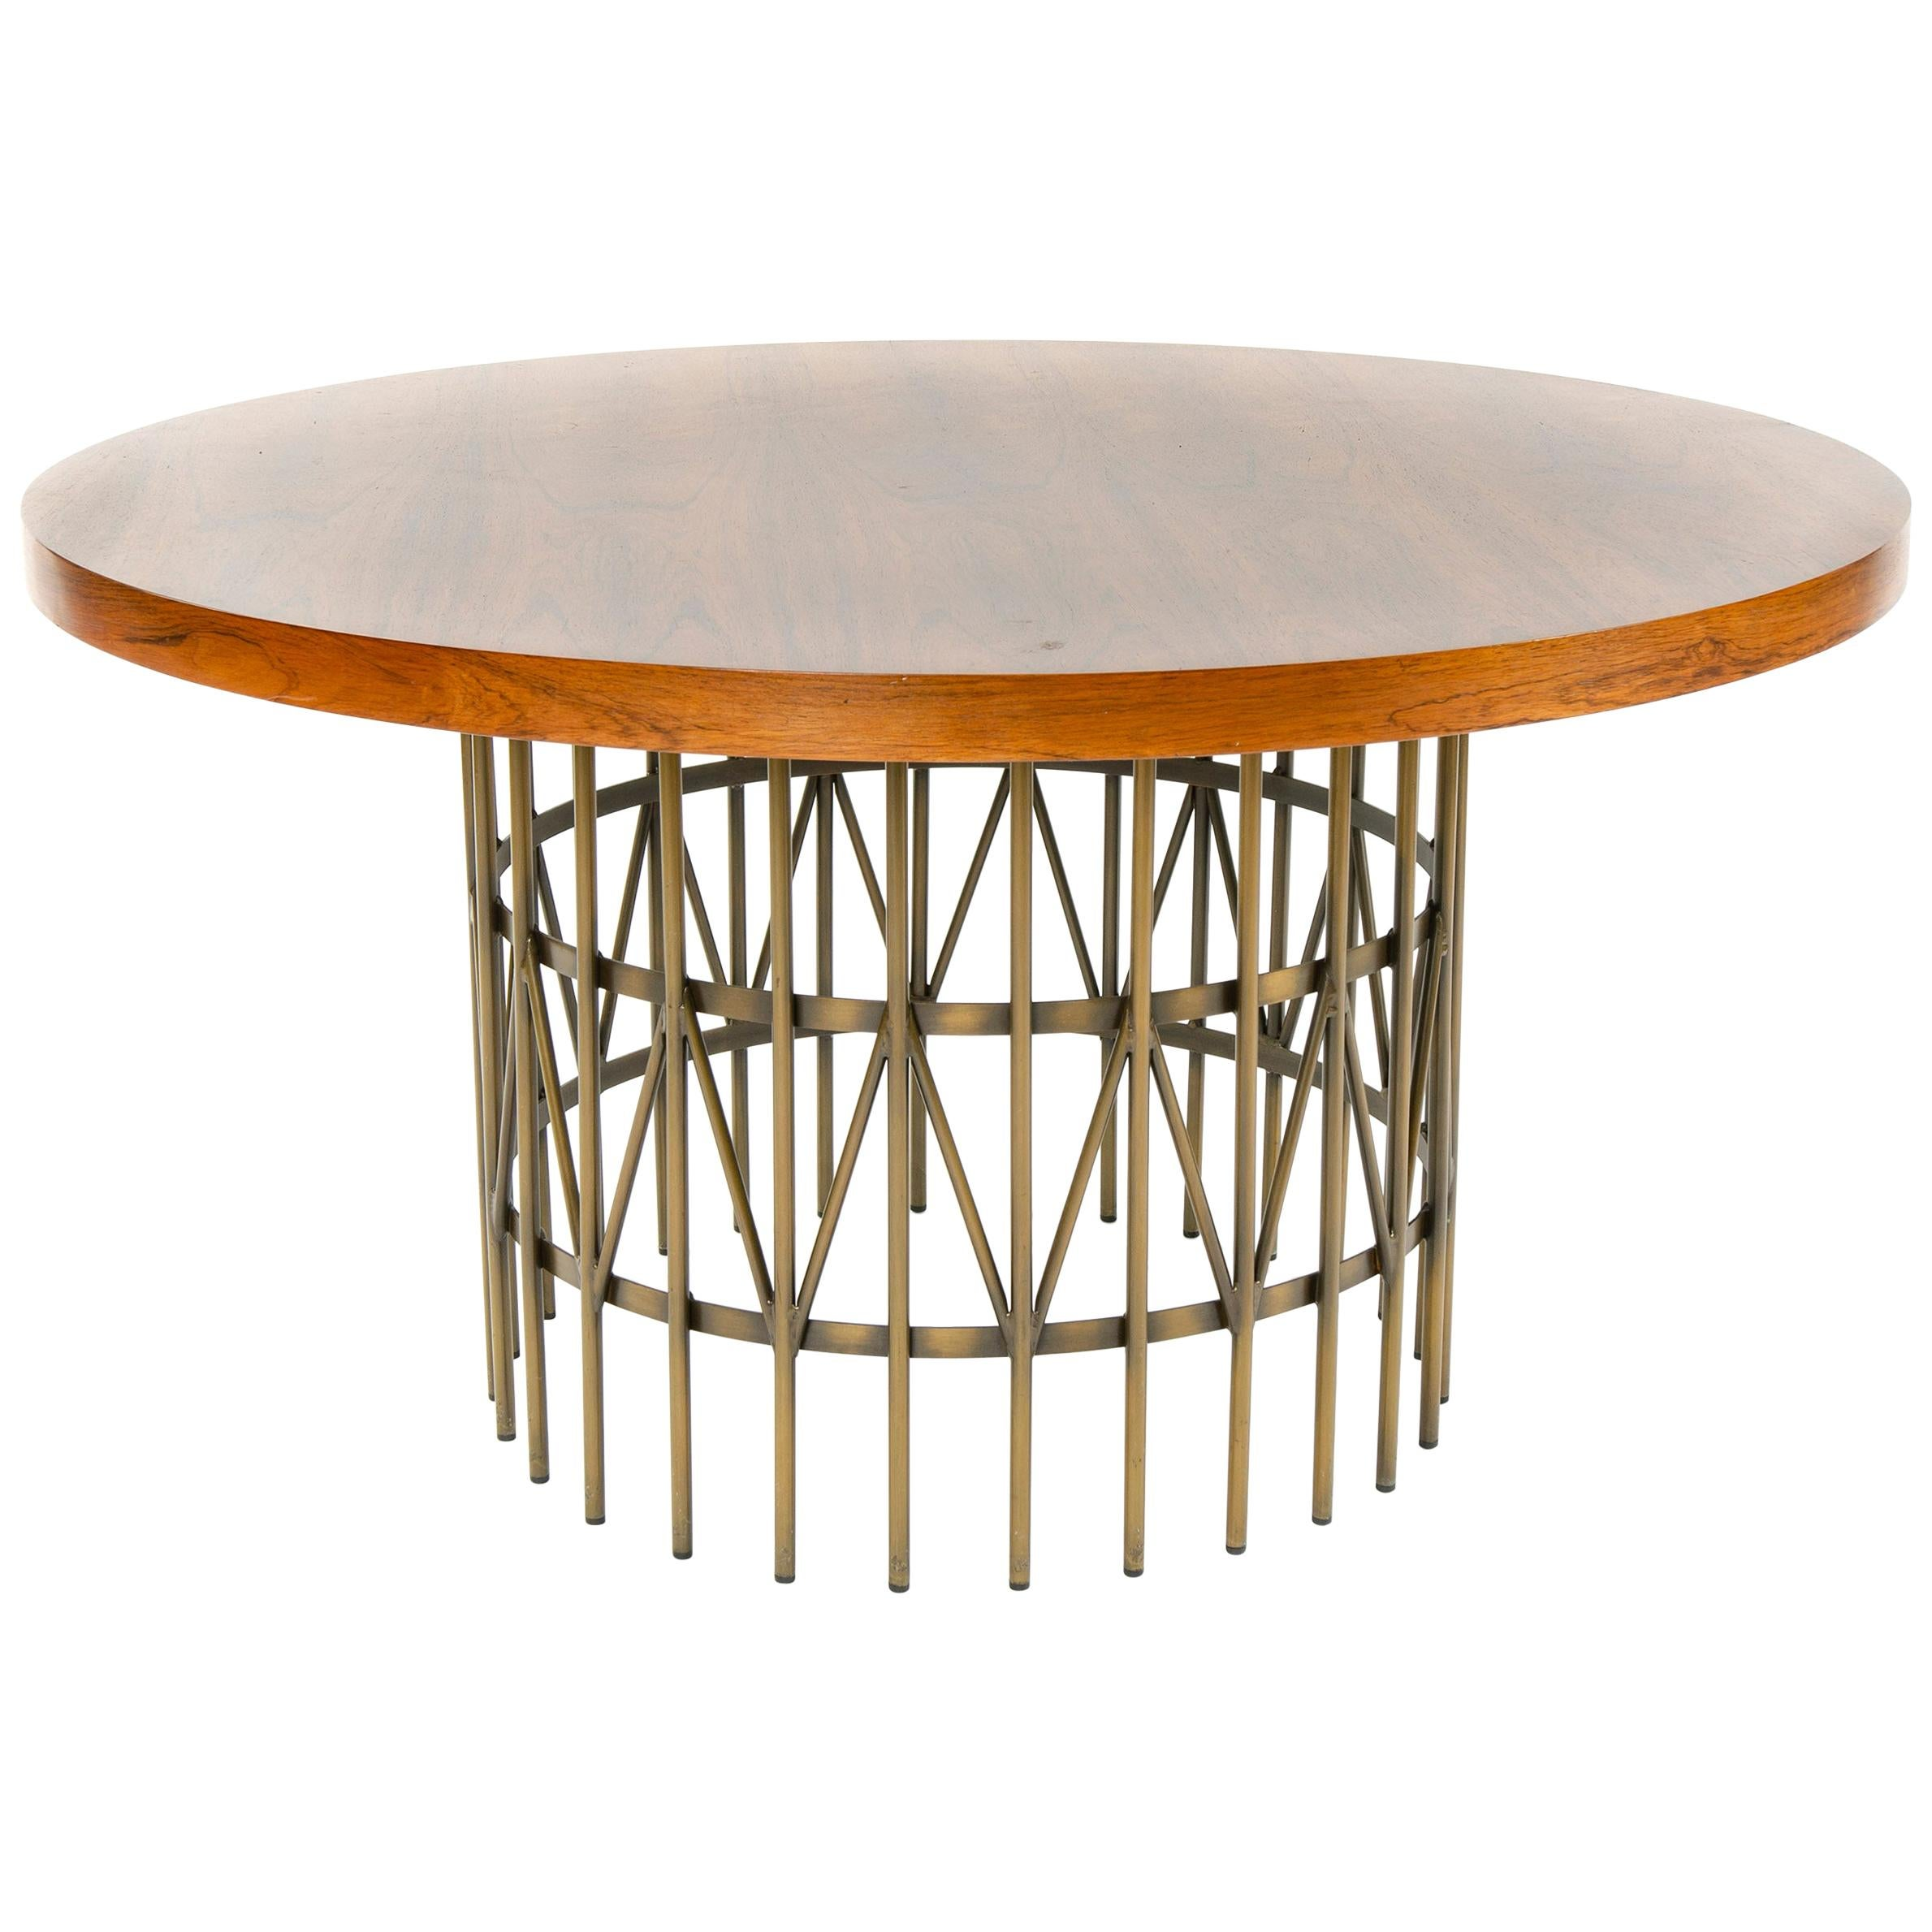 1960s Rosewood Cocktail Table by Milo Baughman for Thayer Coggin